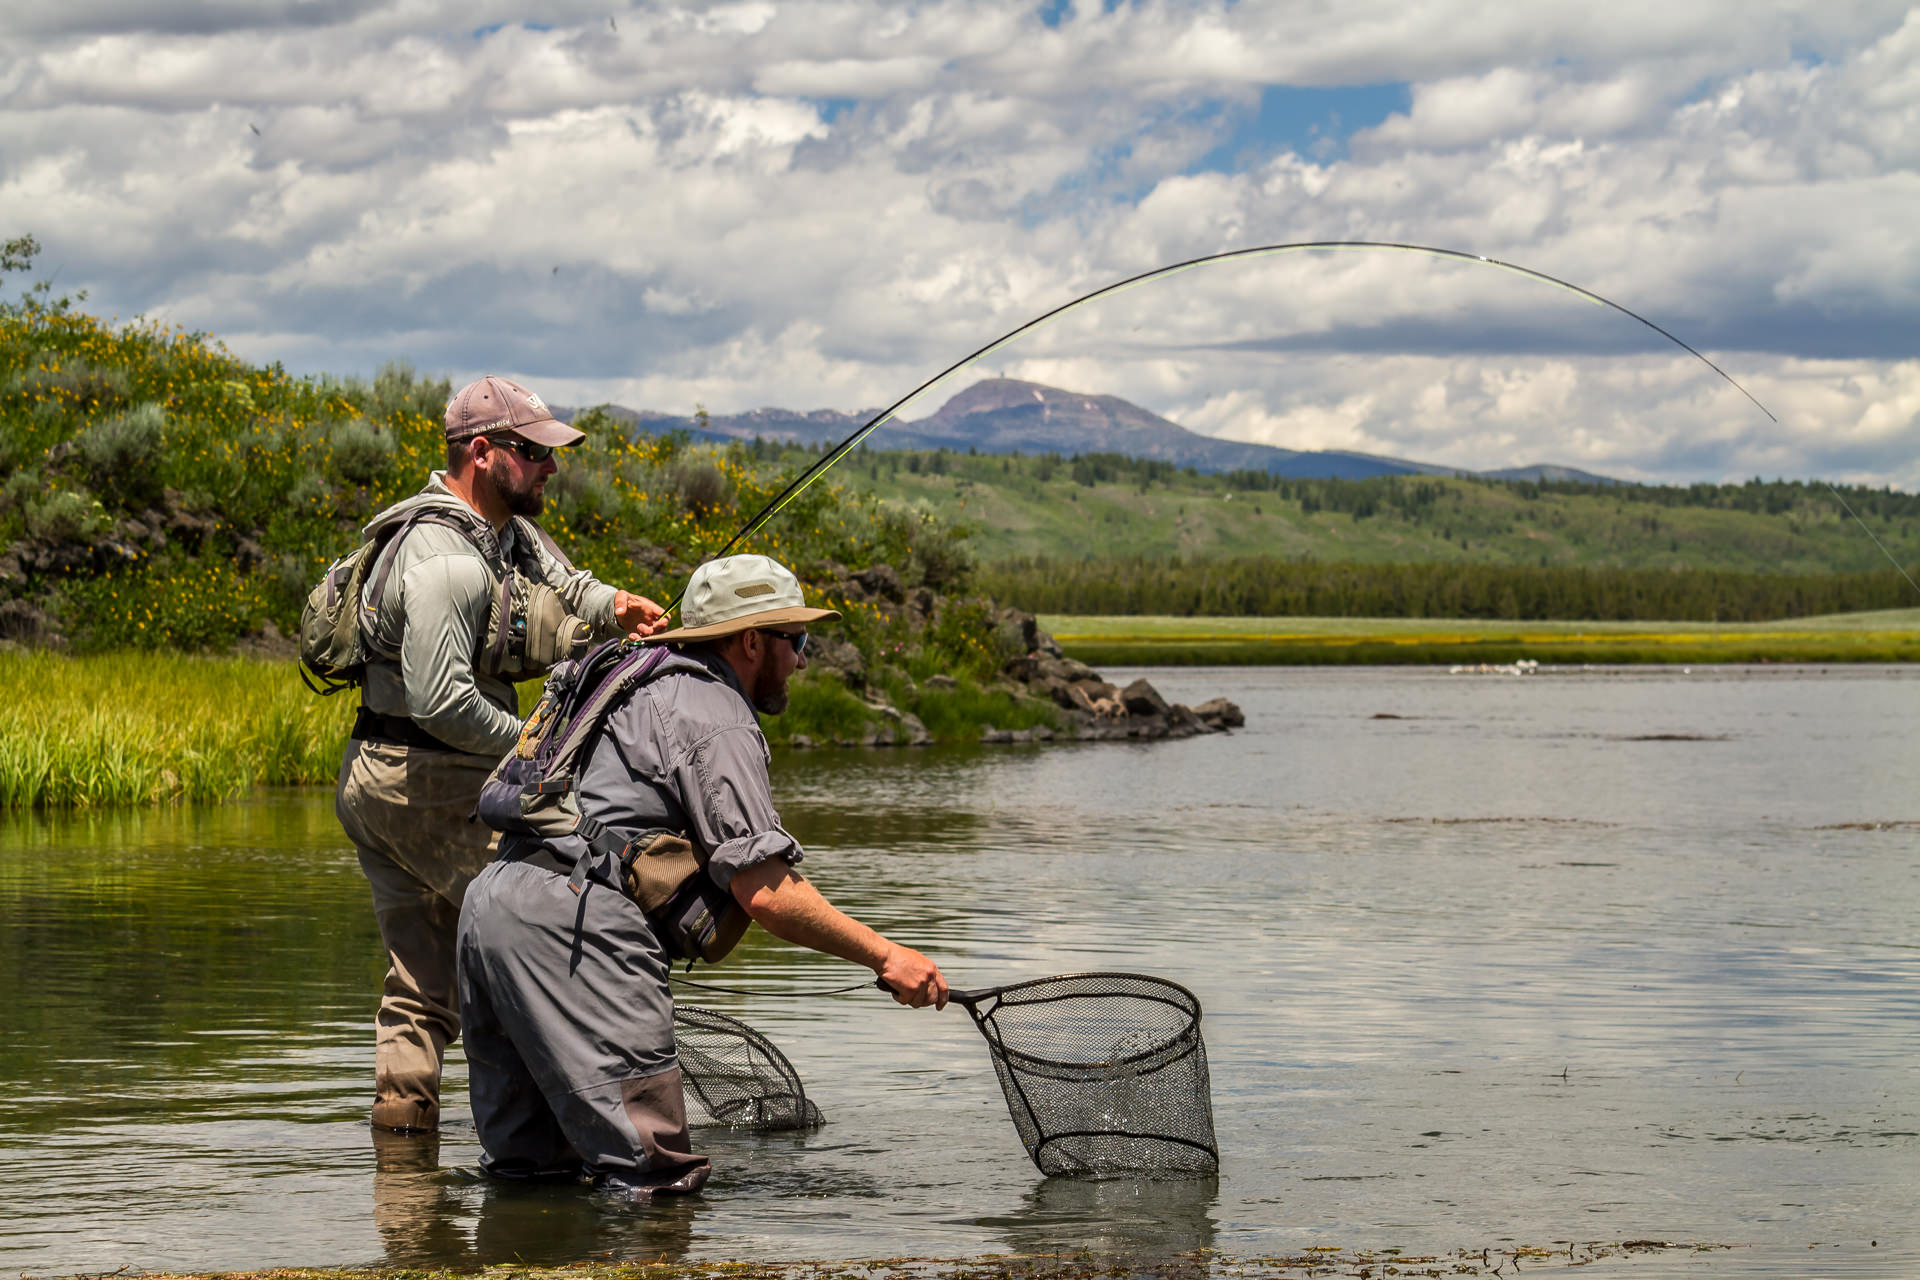 Fly Fishing Channel on Vimeo